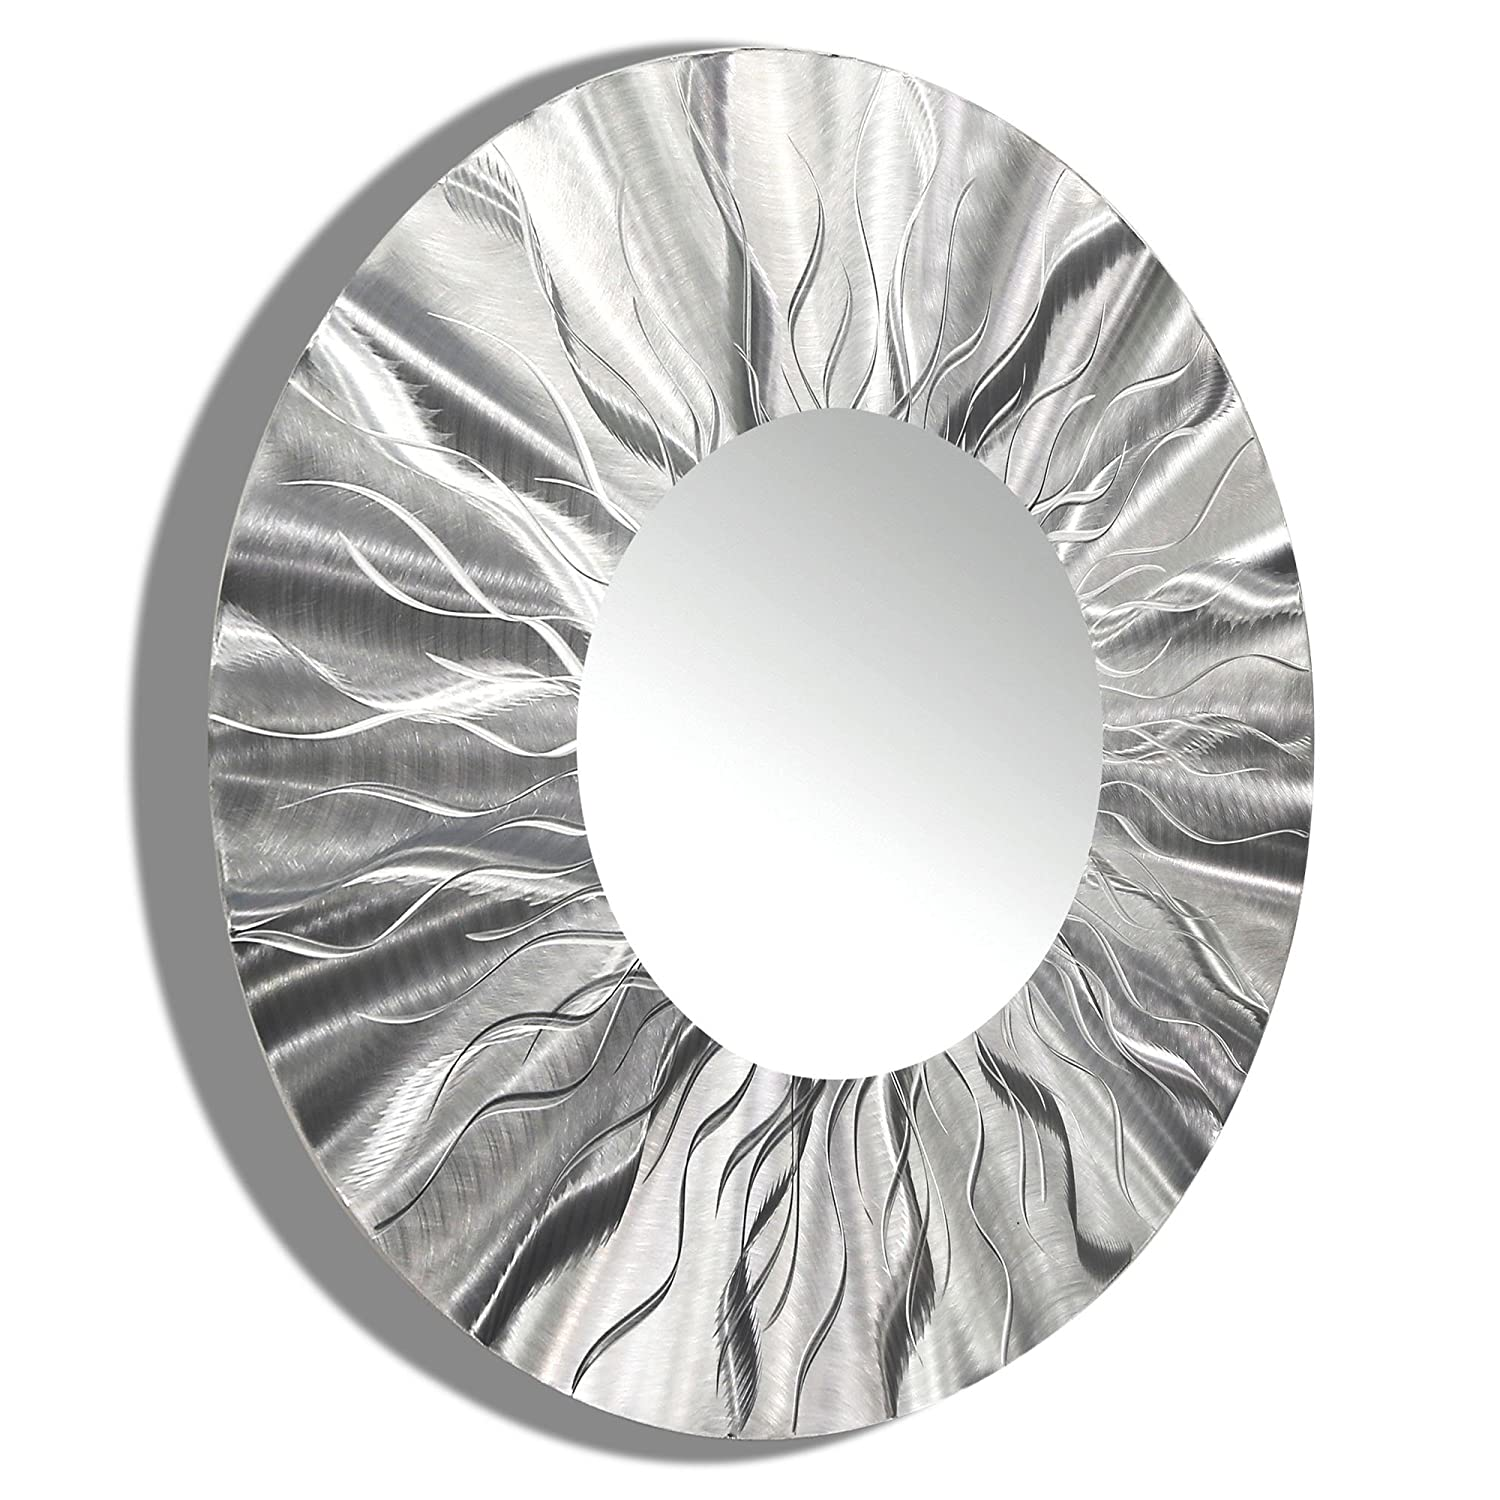 amazoncom large round silver modern metal wall art wall mirror home accent decor sculpture by jon allen mirror 105 home u0026 kitchen